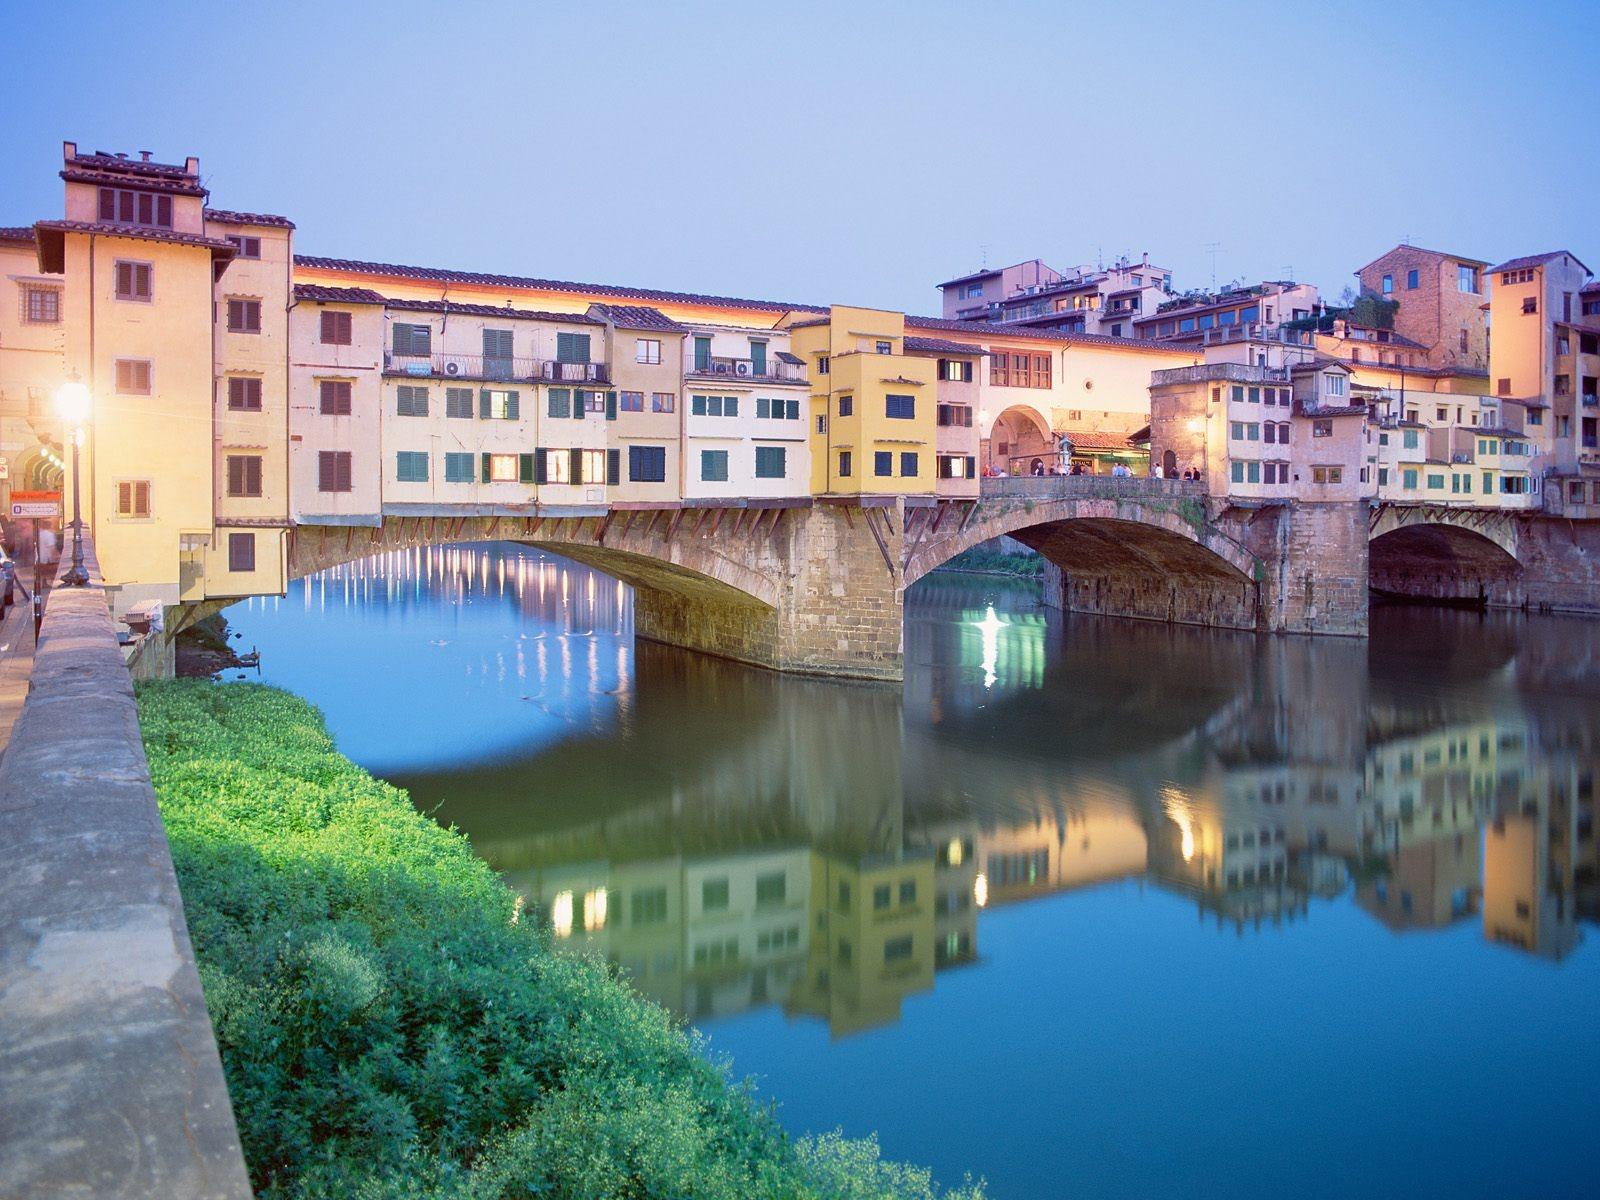 http://www.worldalldetails.com/article_image/ponte_vecchio_florence_462468.jpg